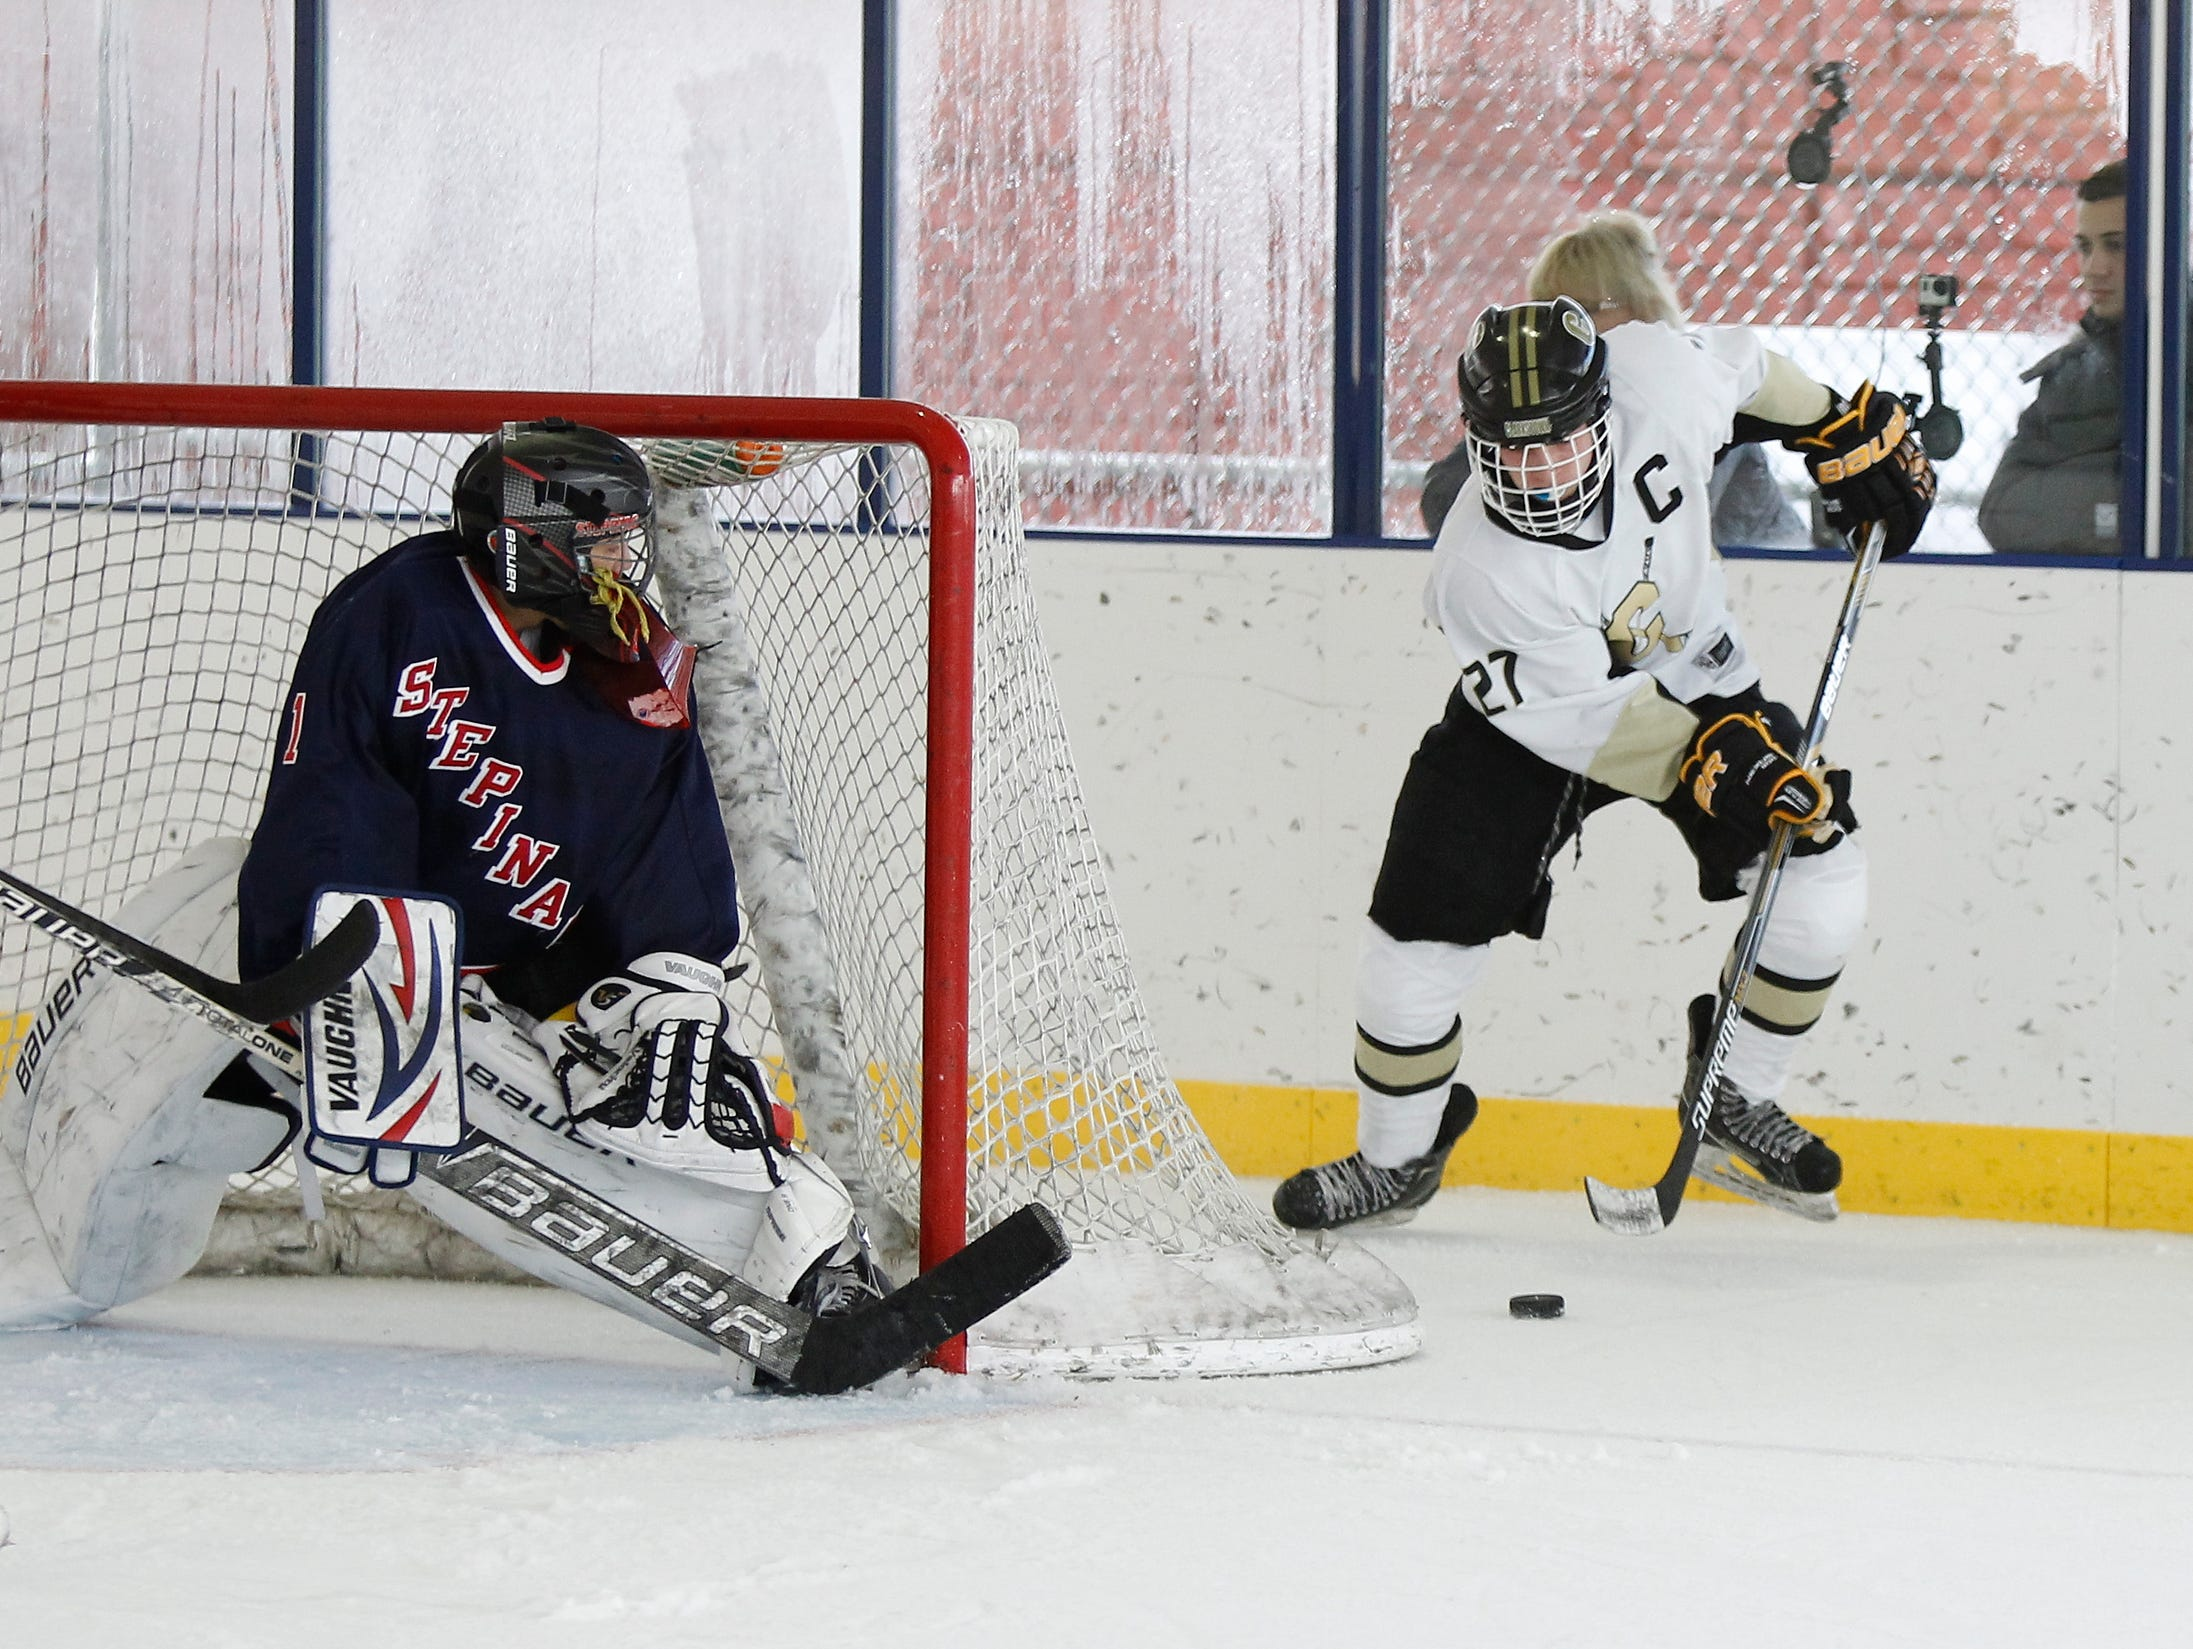 Clarkstown's Adam Marvin (27) works the puck around the net as Stepinac'c goalie Tyler Rosado (1) slides across the crease during a varsity ice hockey game at the 2015 Guy Matthews Thanksgiving Invitational Hockey tournament at Ebersole Ice Rink in White Plains on Friday, Nov. 27, 2015.